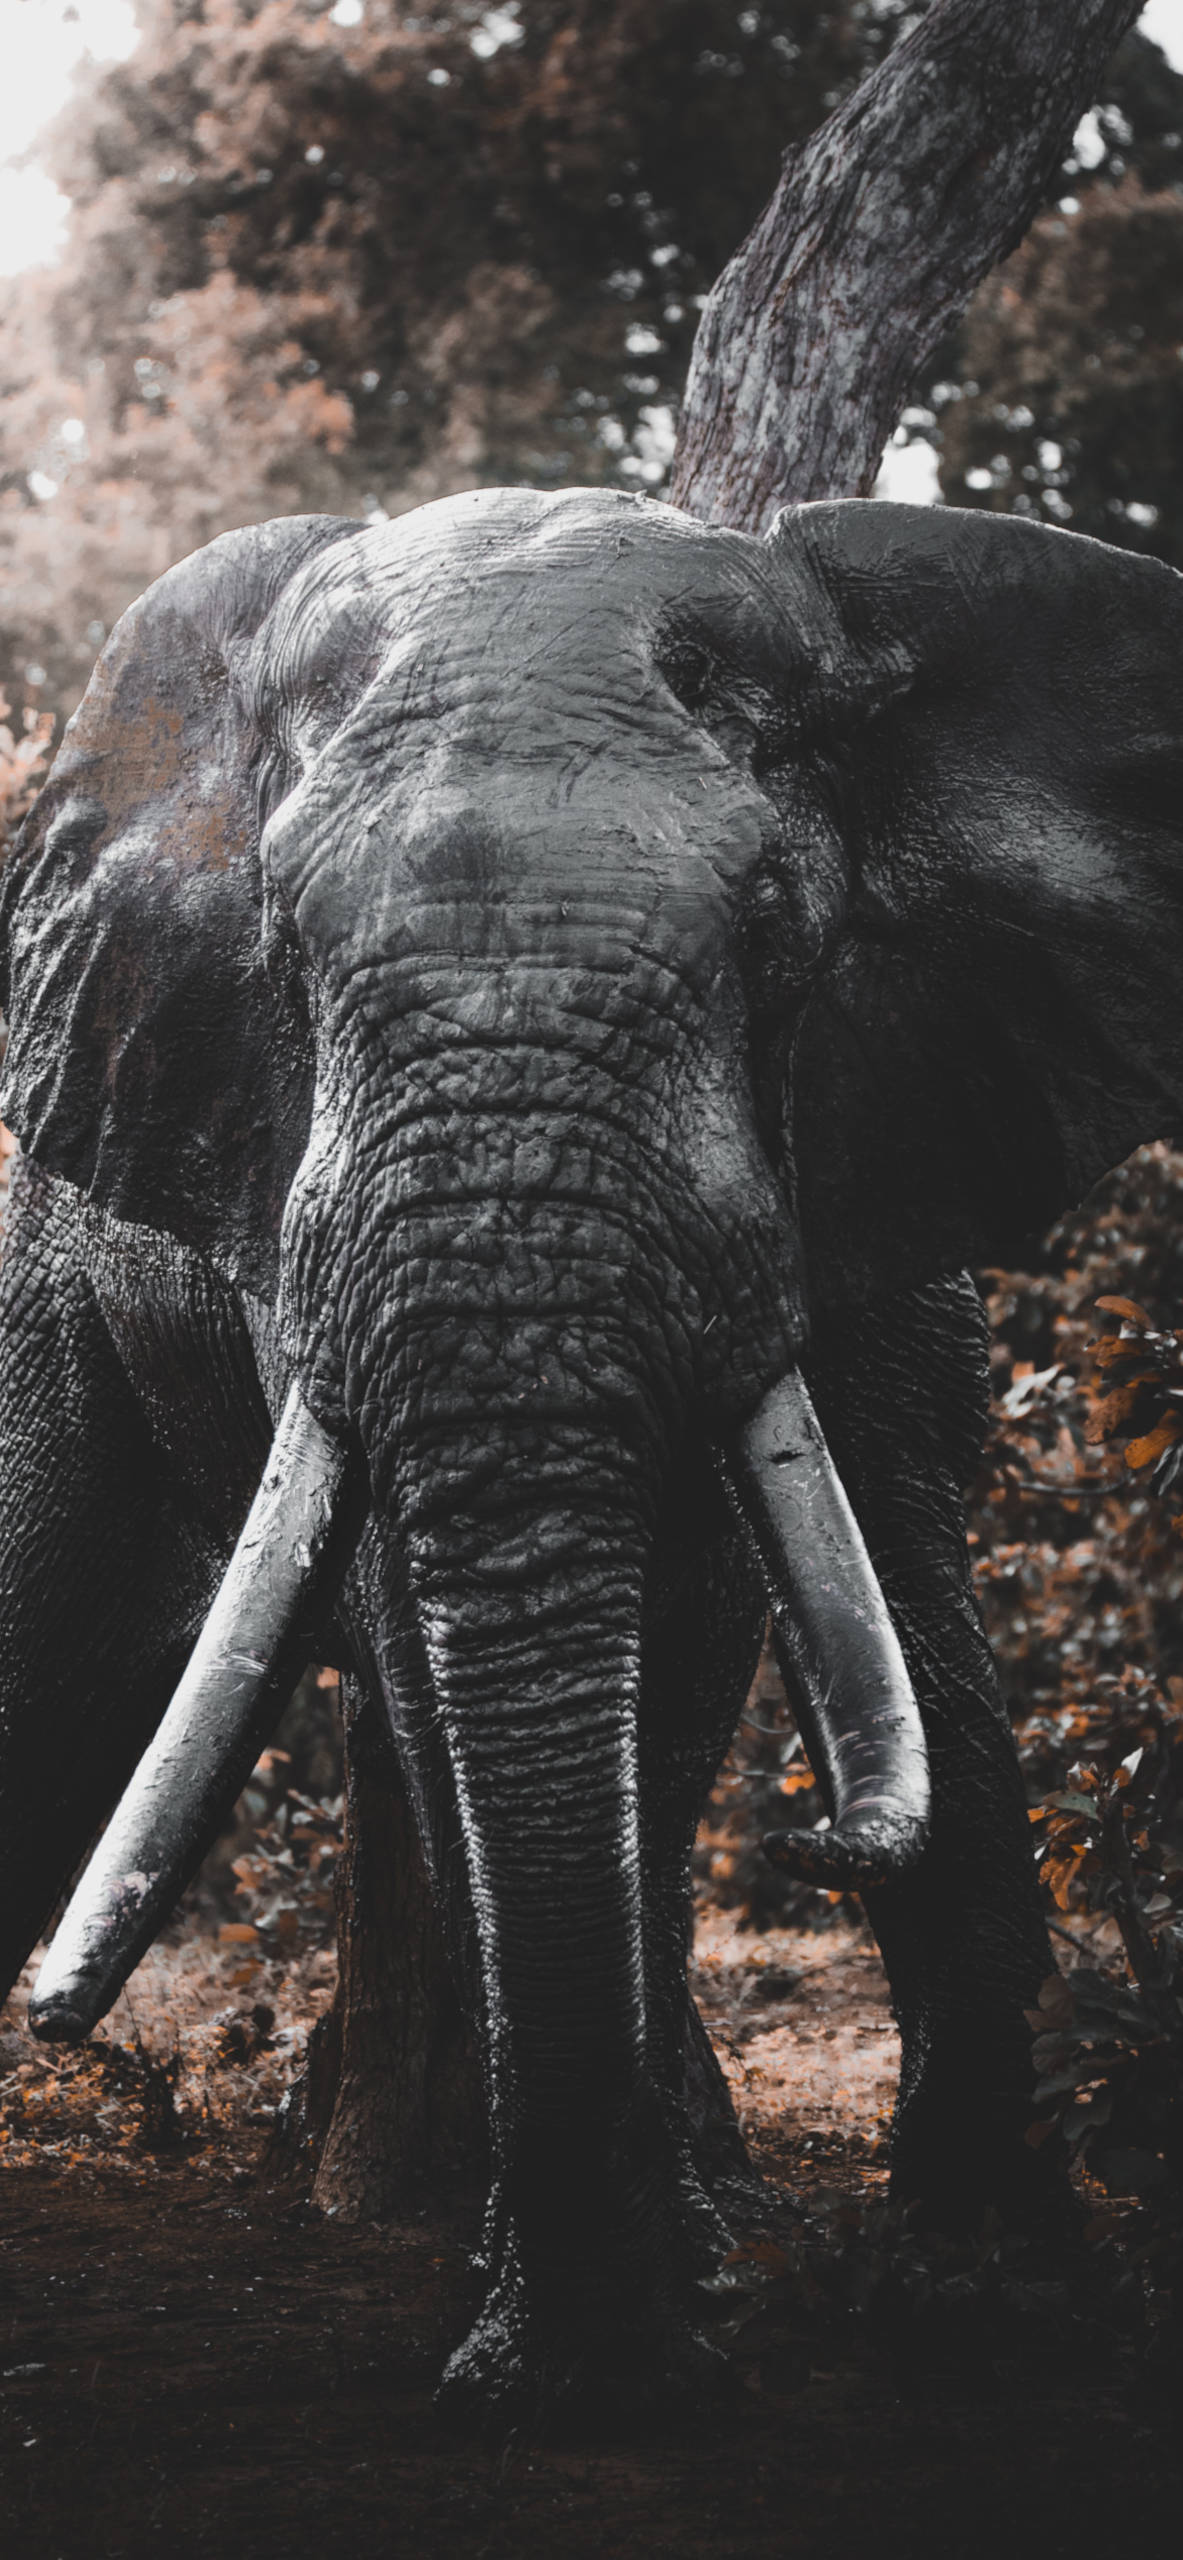 iPhone wallpapers elephanth south africa Elephant